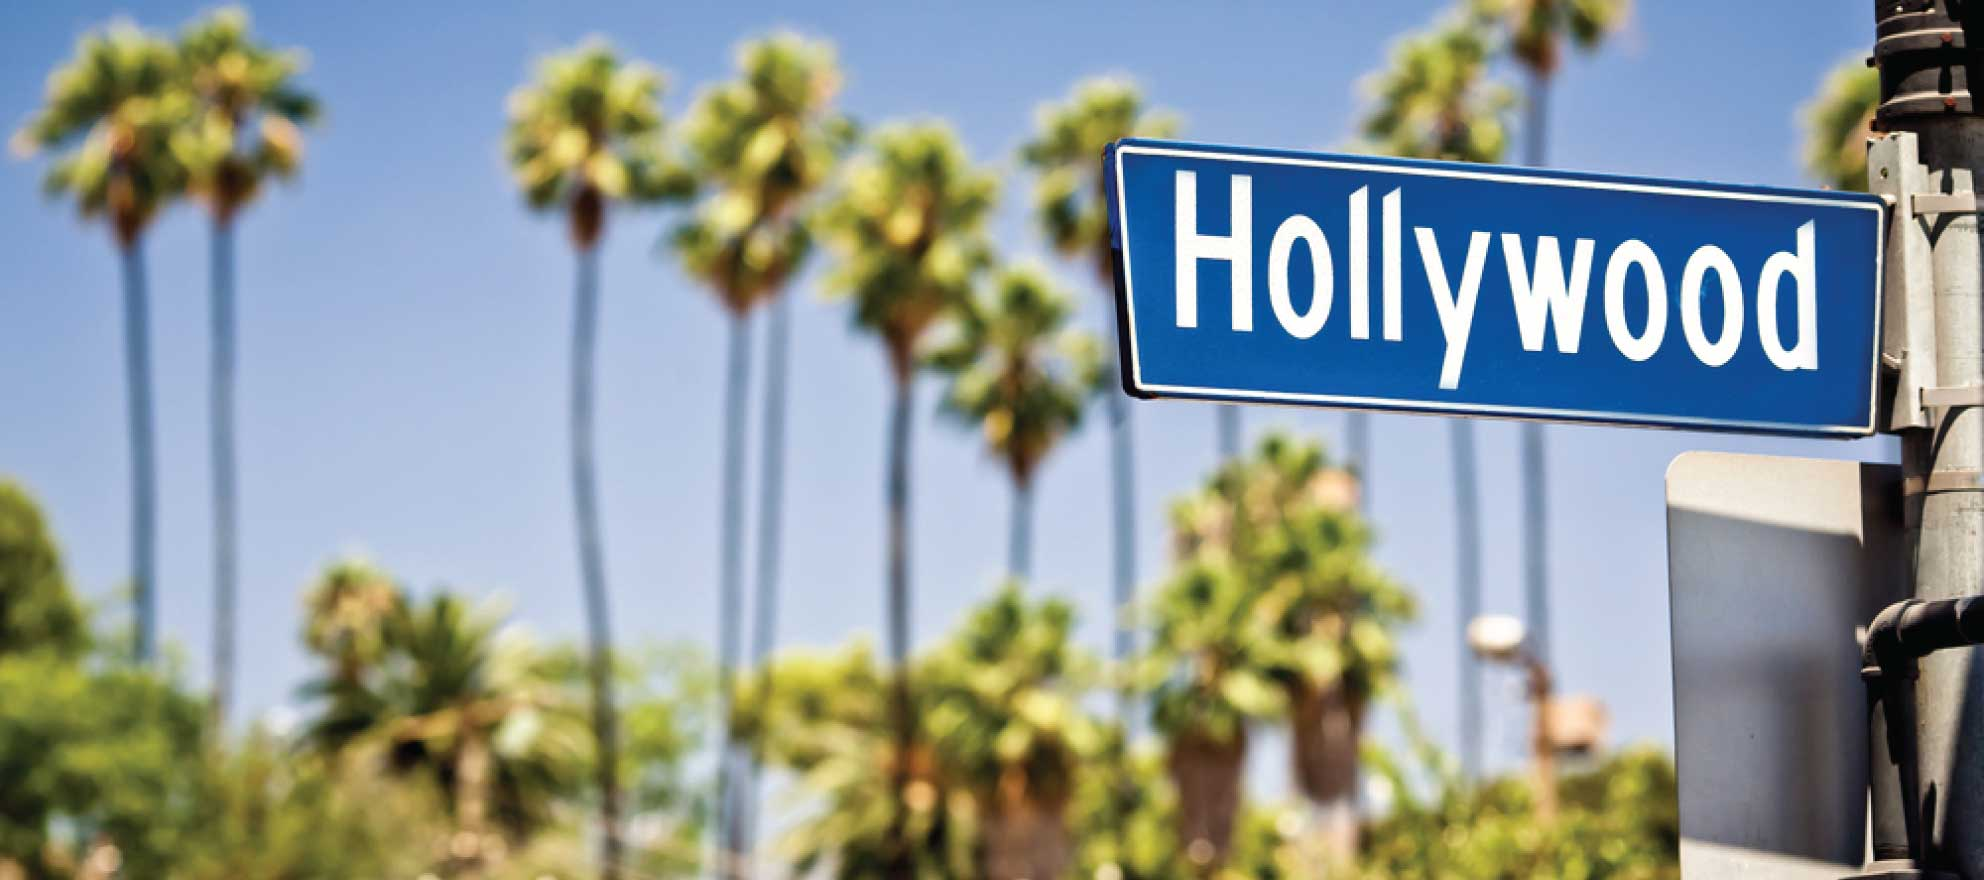 Startup hopes 'Hollywood' video ad helps it blast off